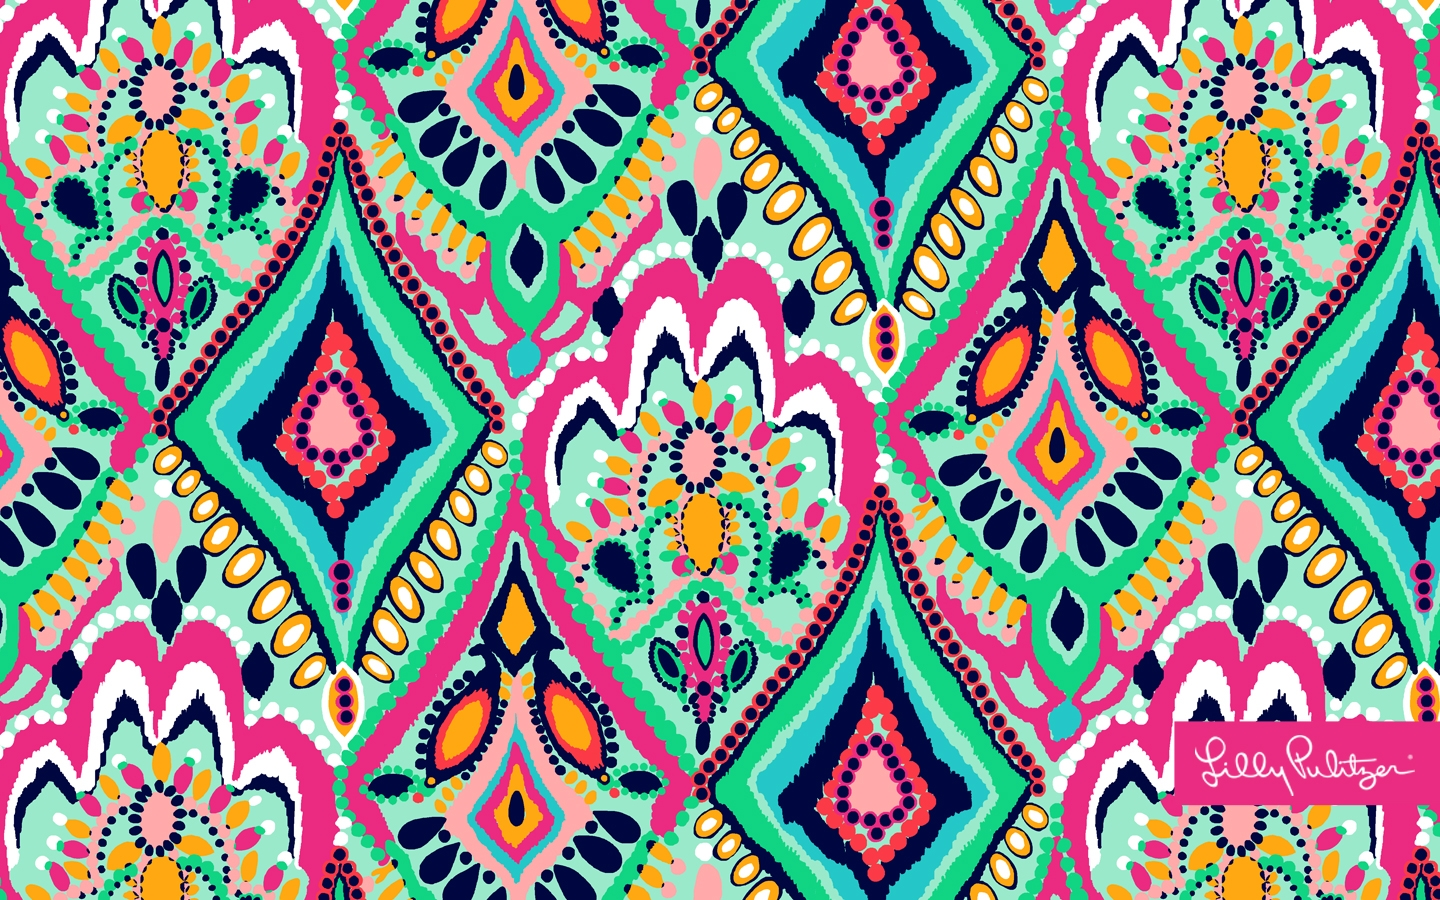 Free Lilly Pulitzer Desktop Wallpapers By Shopaholics